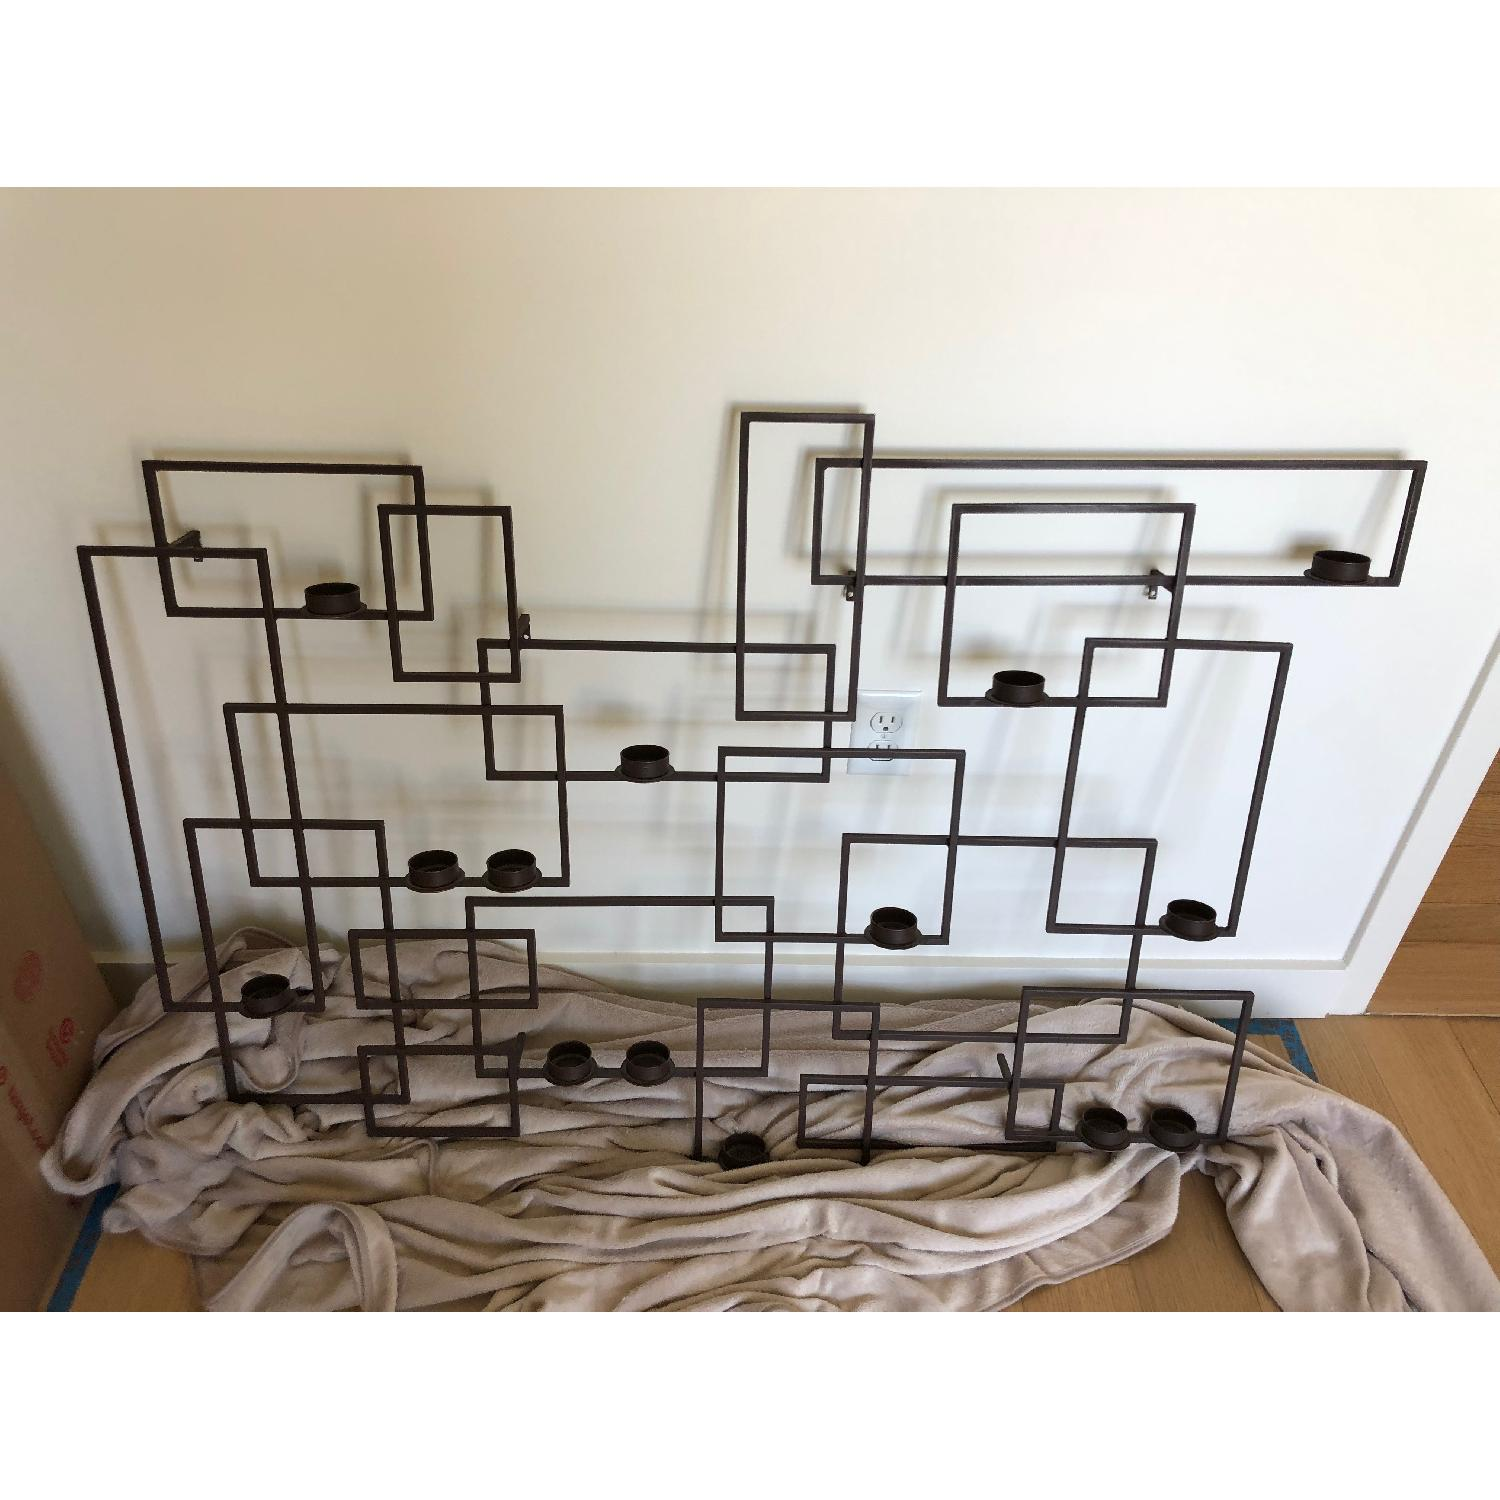 Crate & Barrel Wall Candle Holder-1